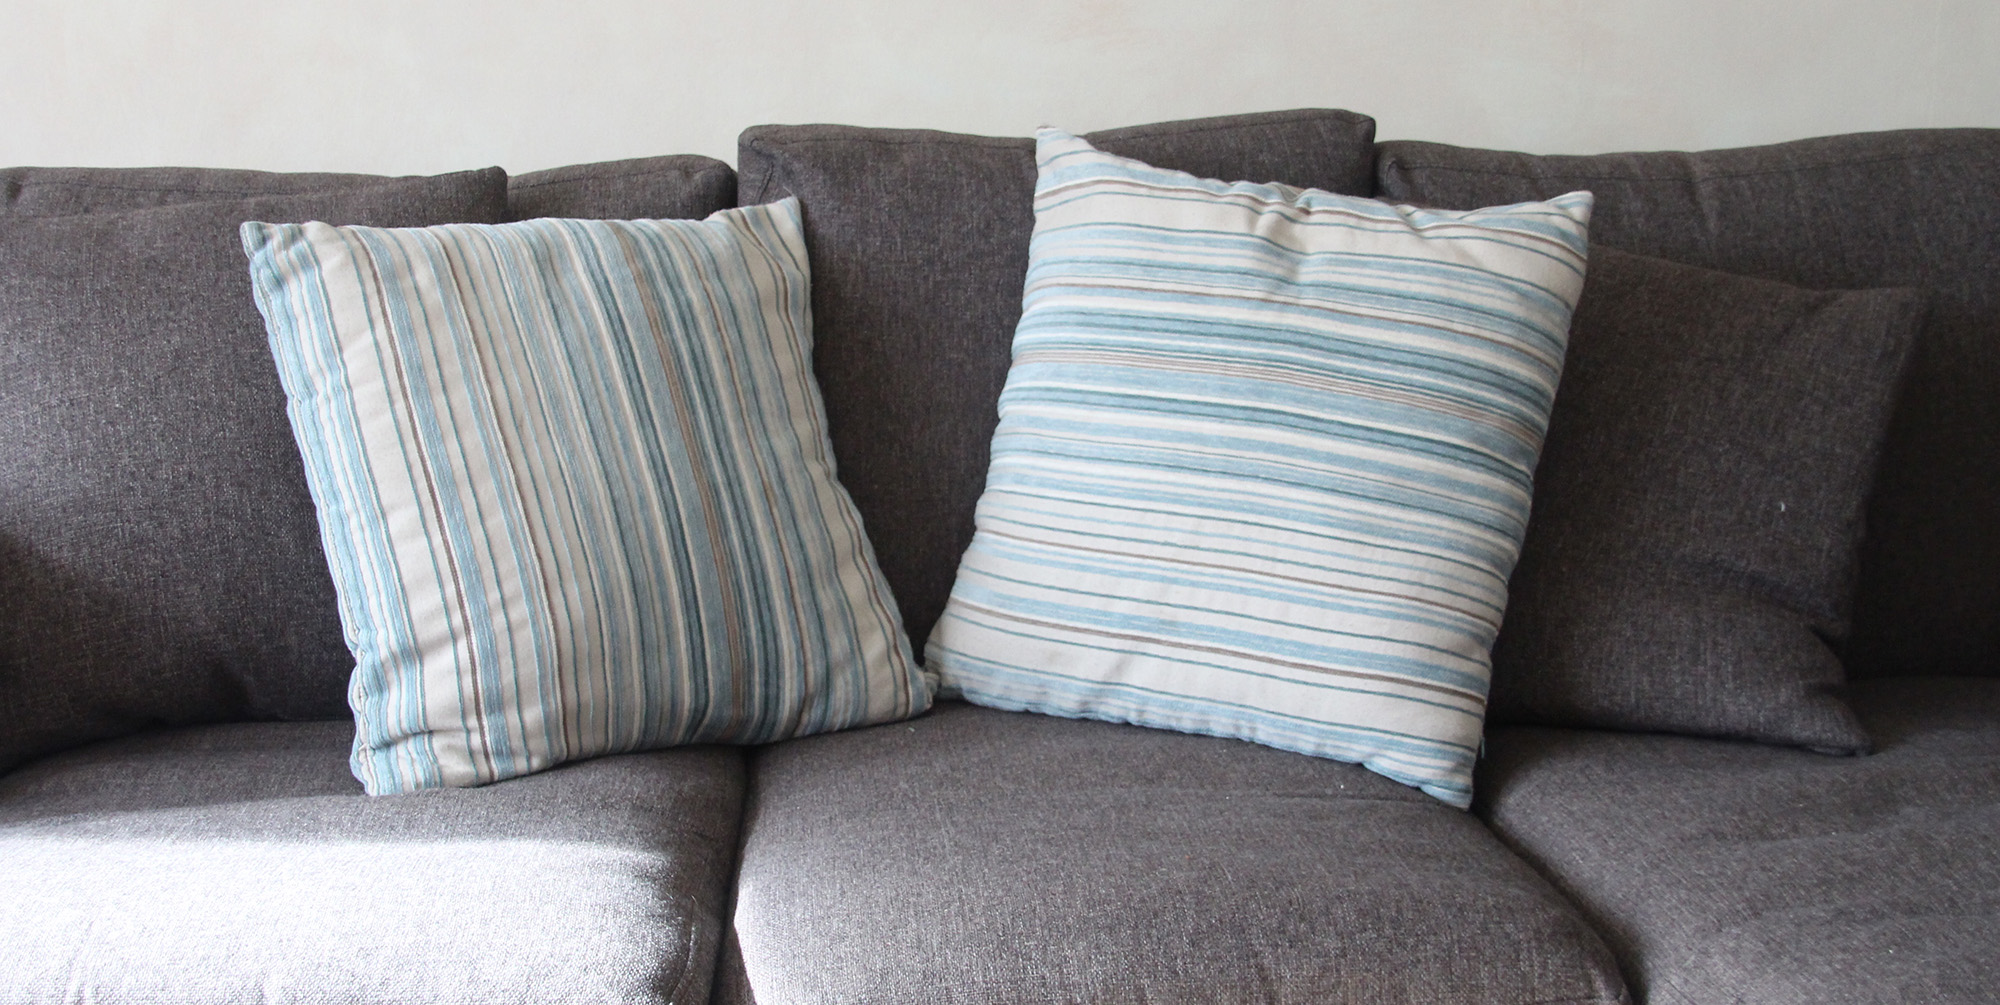 sofa dry cleaning cost round for restaurant spring tips your home from butlerz